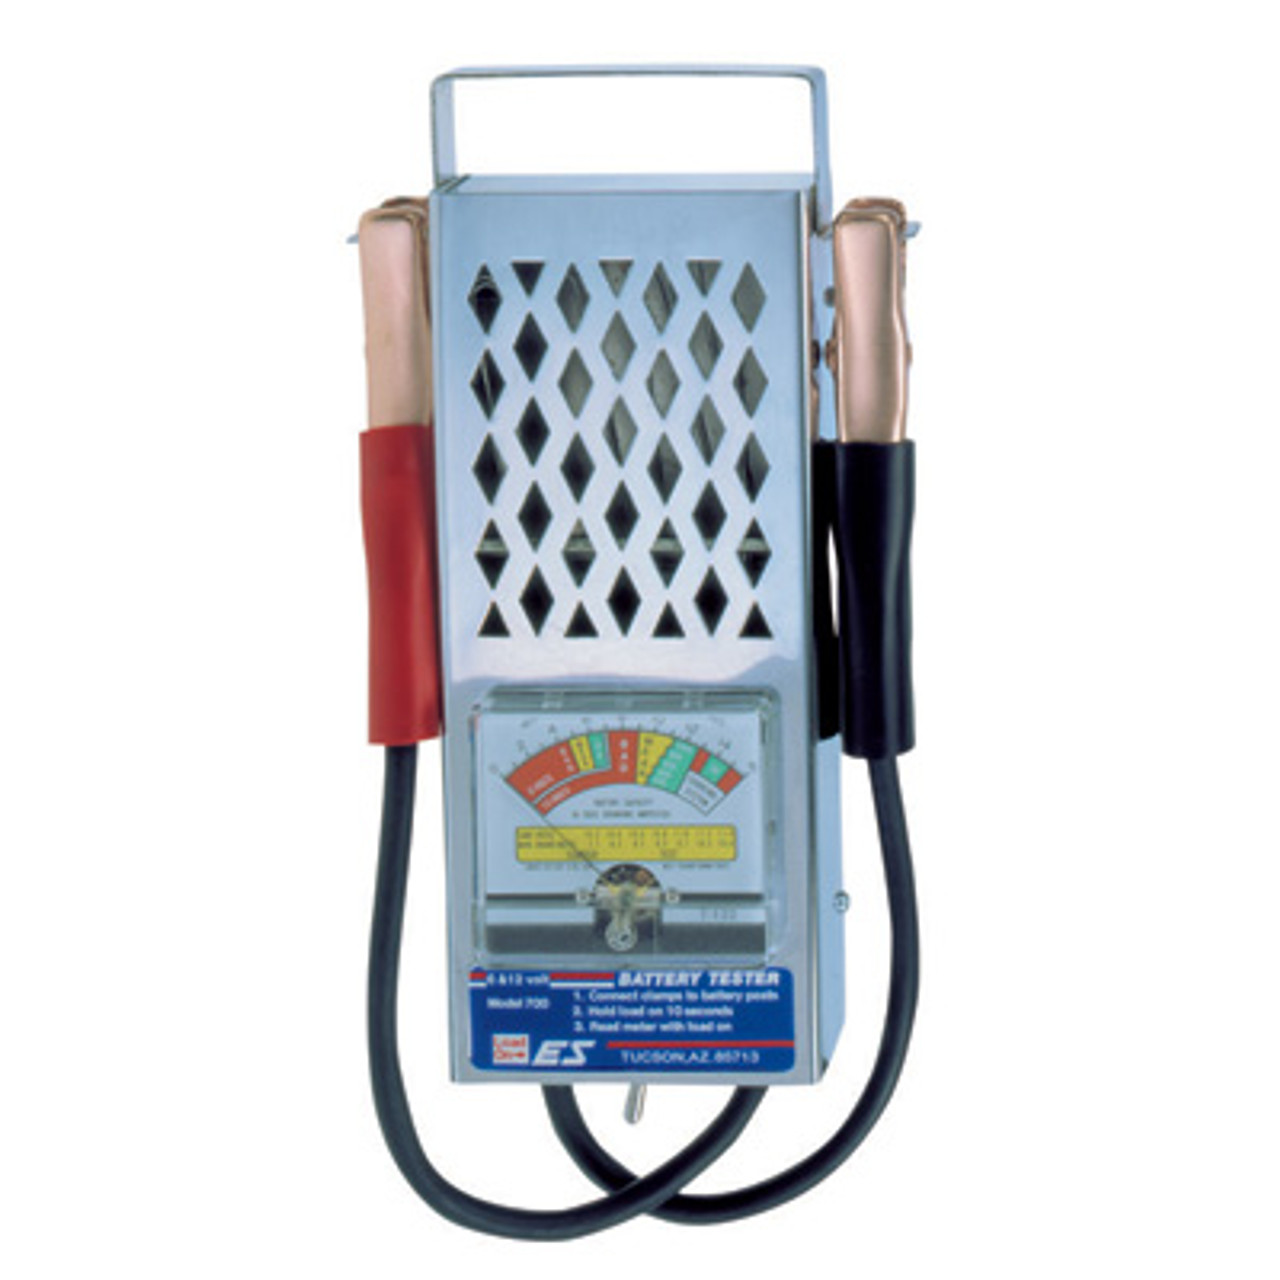 Electronic Specialties 720 Digital Battery Tester